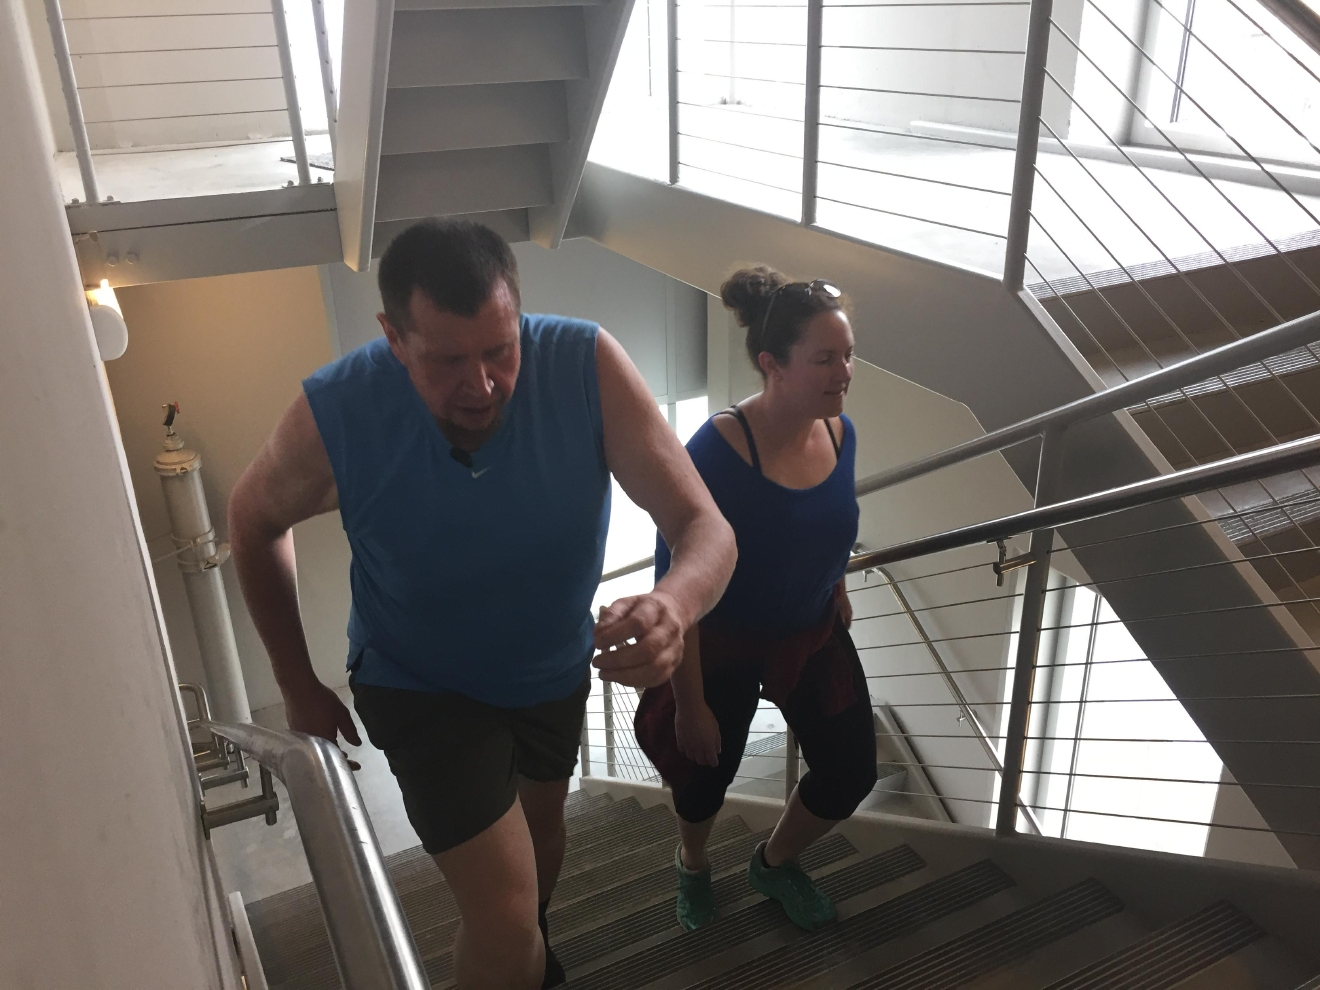 Walter Beals lost about 170 pounds and gained a girlfriend on the way to his goal of walking 20,000 floors. (WLOS staff)